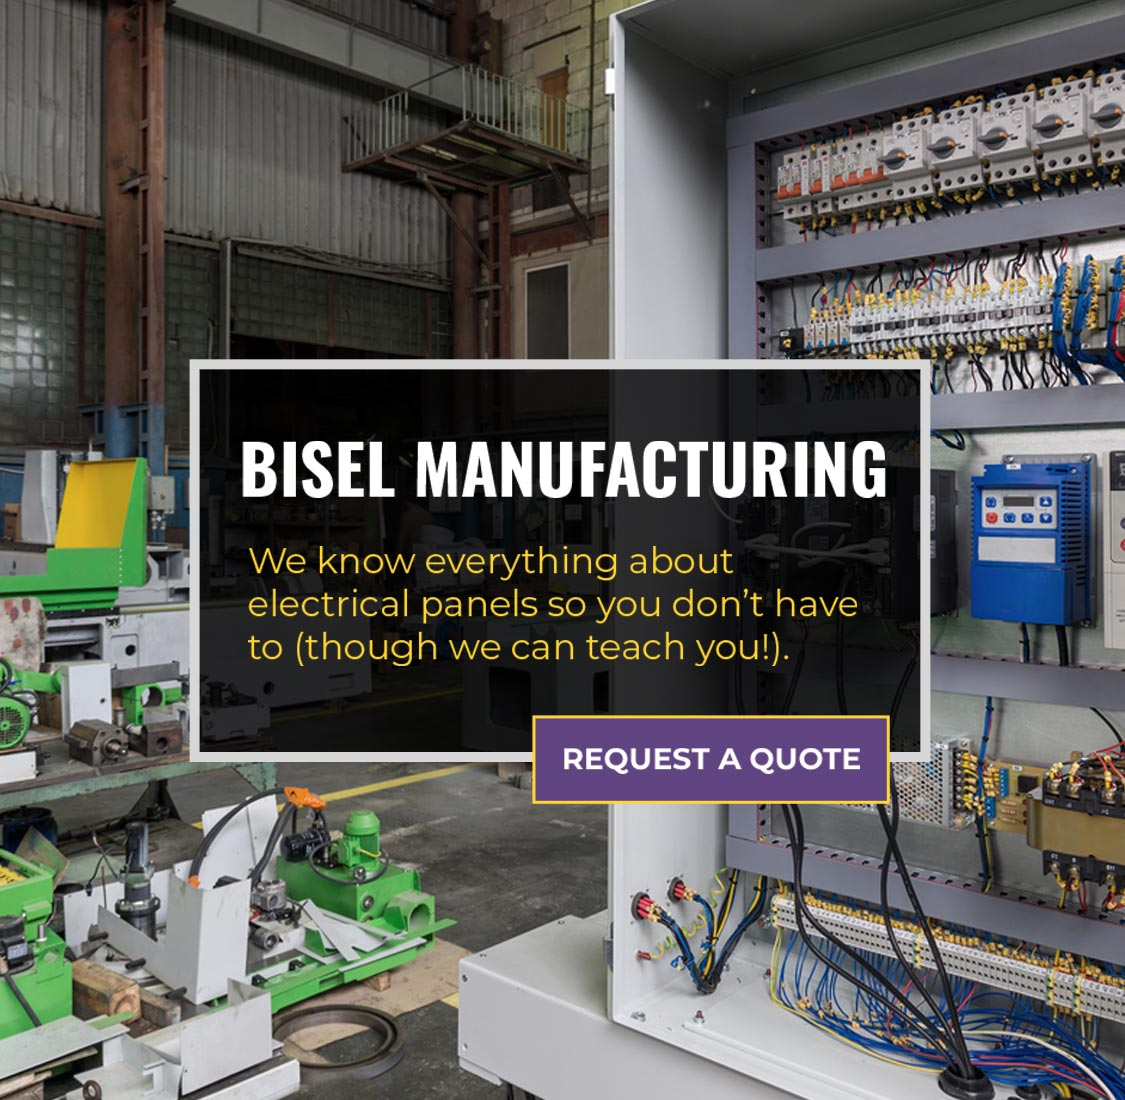 Bisel Manufacturing knows everything about electrical panels to you don't have to.